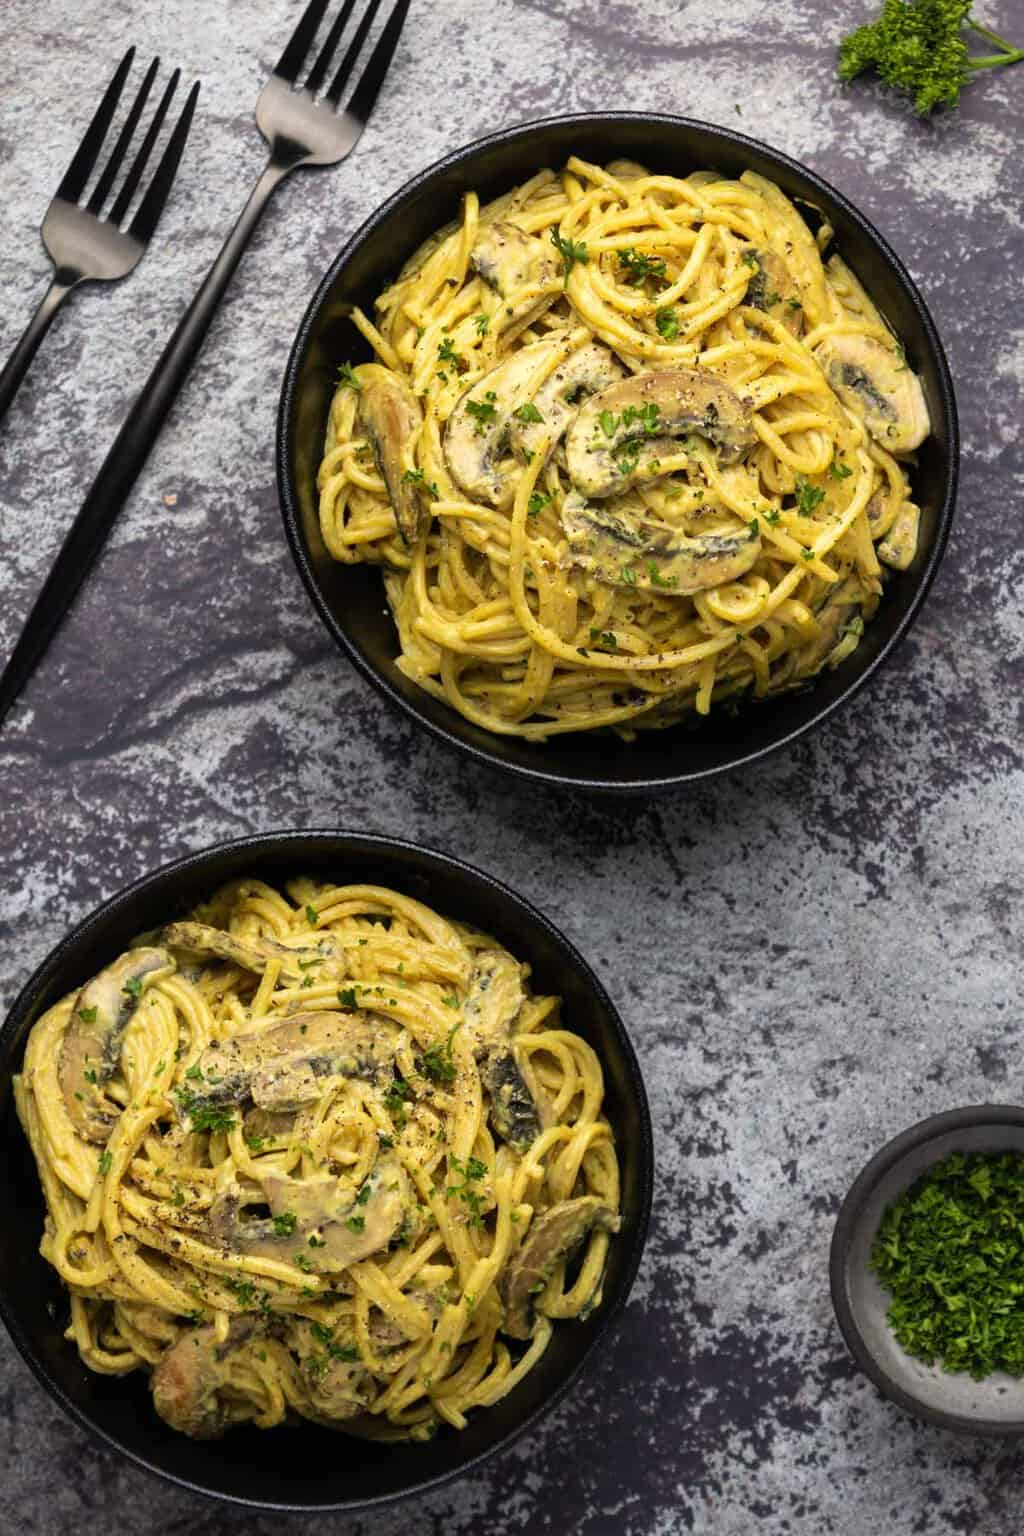 Vegan carbonara topped with chopped parsley in black bowls.